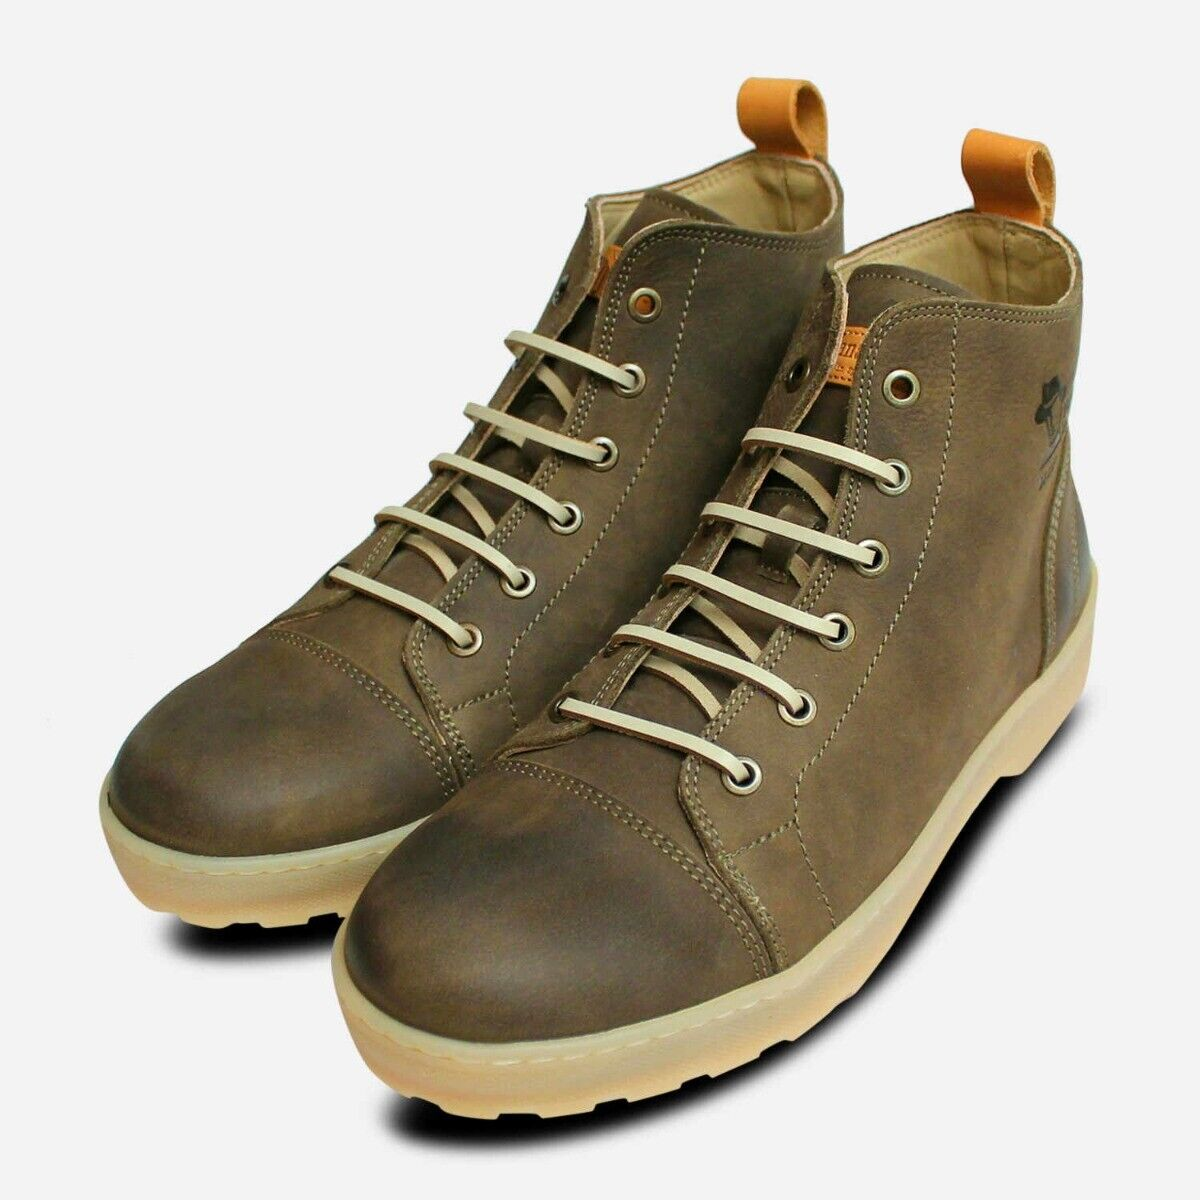 Panama Jack Khaki Green Manhattan C2 Lace Up Boots